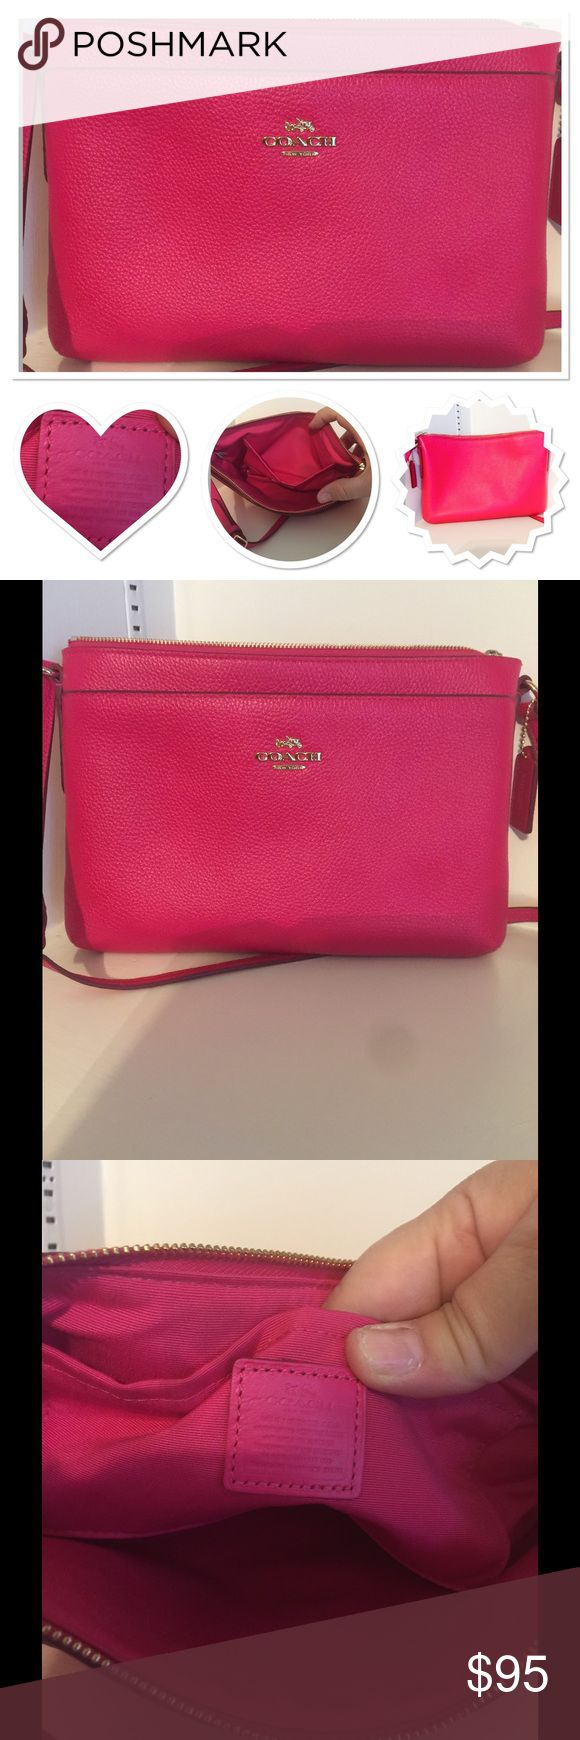 Coach Crossbody purse ❤️SALE-today only!❤️ Super cute Coach purse in bright pink pebbled leather. Coach Bags Crossbody Bags